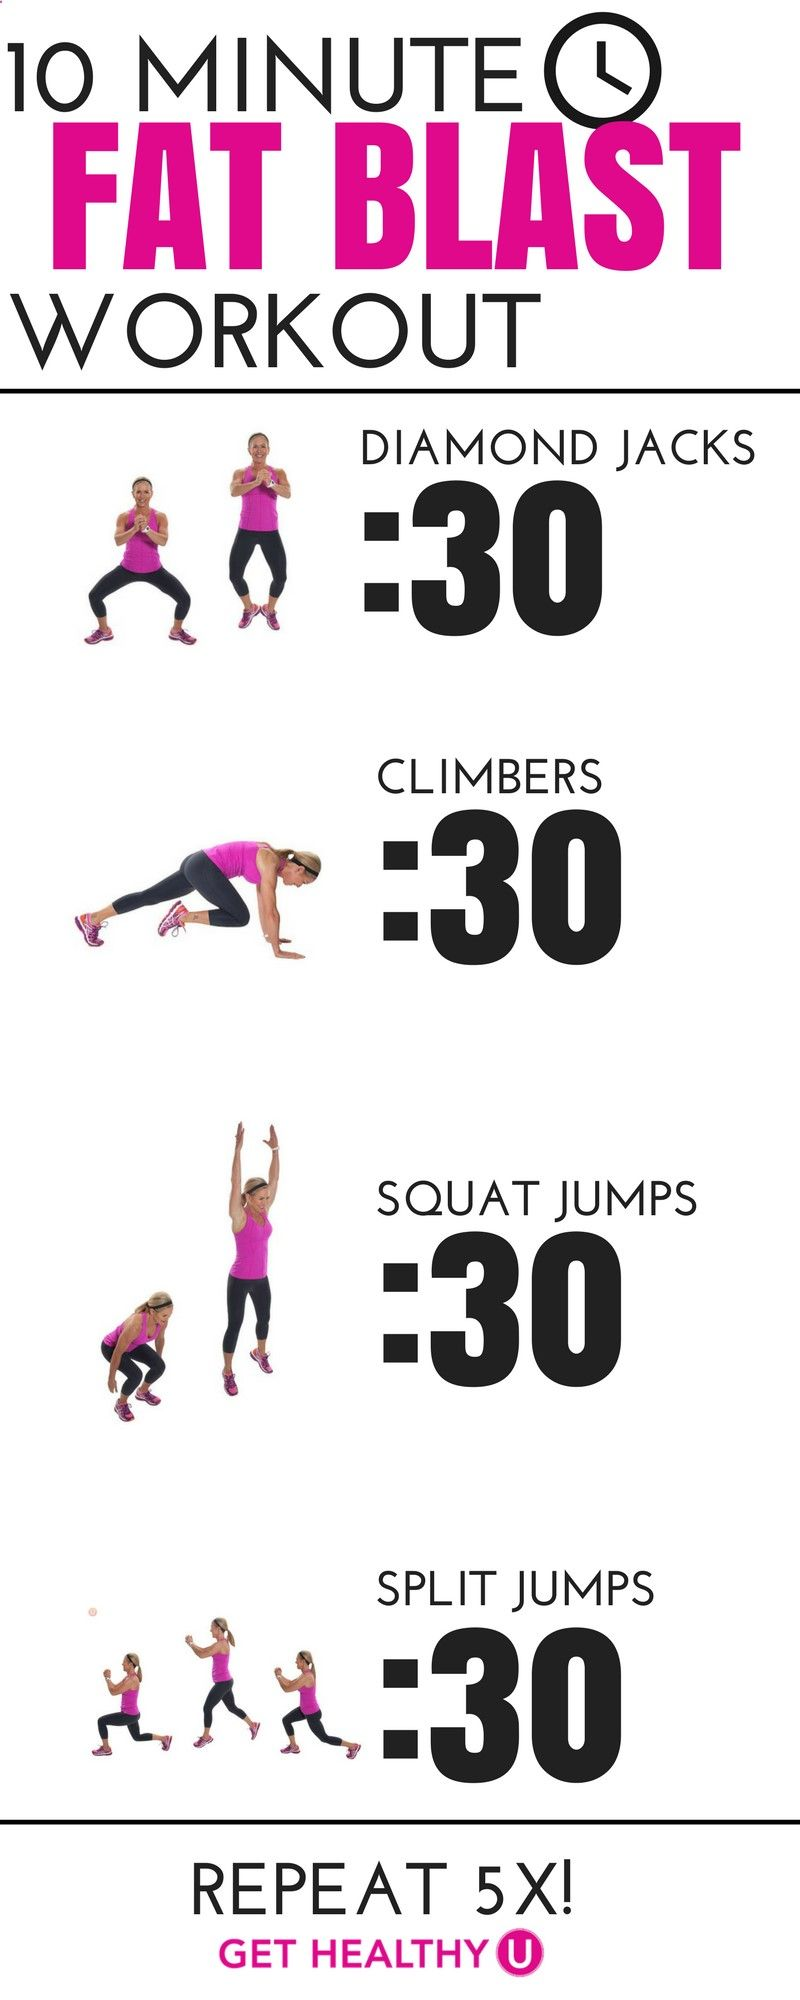 All you'll need for this quick, fat blasting routine is a little room to move around and 10 minutes. Because these are all high intensity moves, you will be breathing heavy after the first 2-minute round. You will then rest for 1 minute (you can thank me later) and repeat this sequence 3 times. The plyometric moves (jumping) work to get your heart rate elevated and help you burn fat faster!